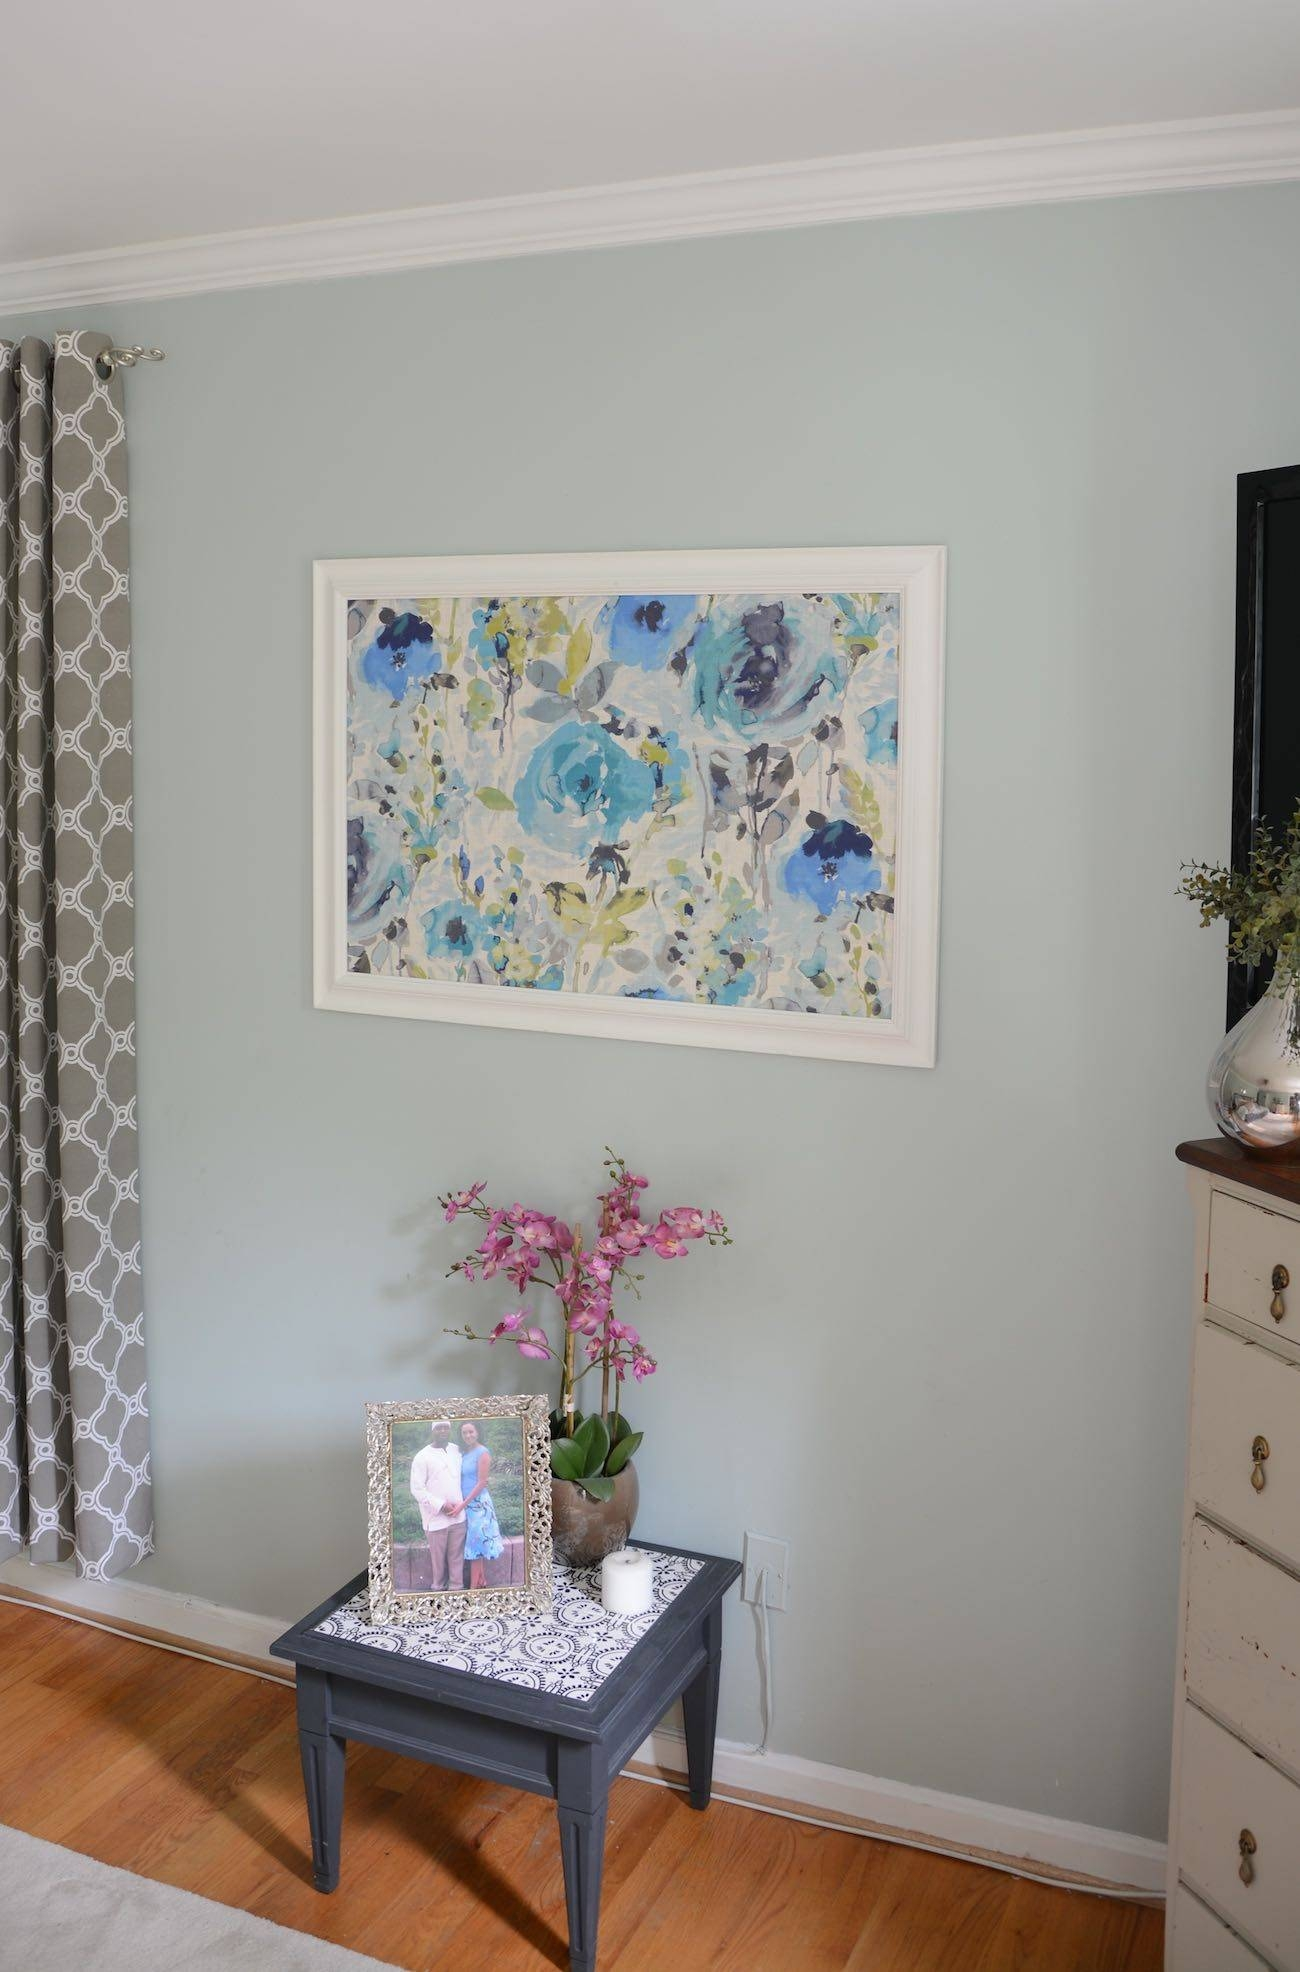 How To Frame Fabric For Wall Art With A Picture Frame Inside Recent Framed Fabric Wall Art (Gallery 3 of 20)